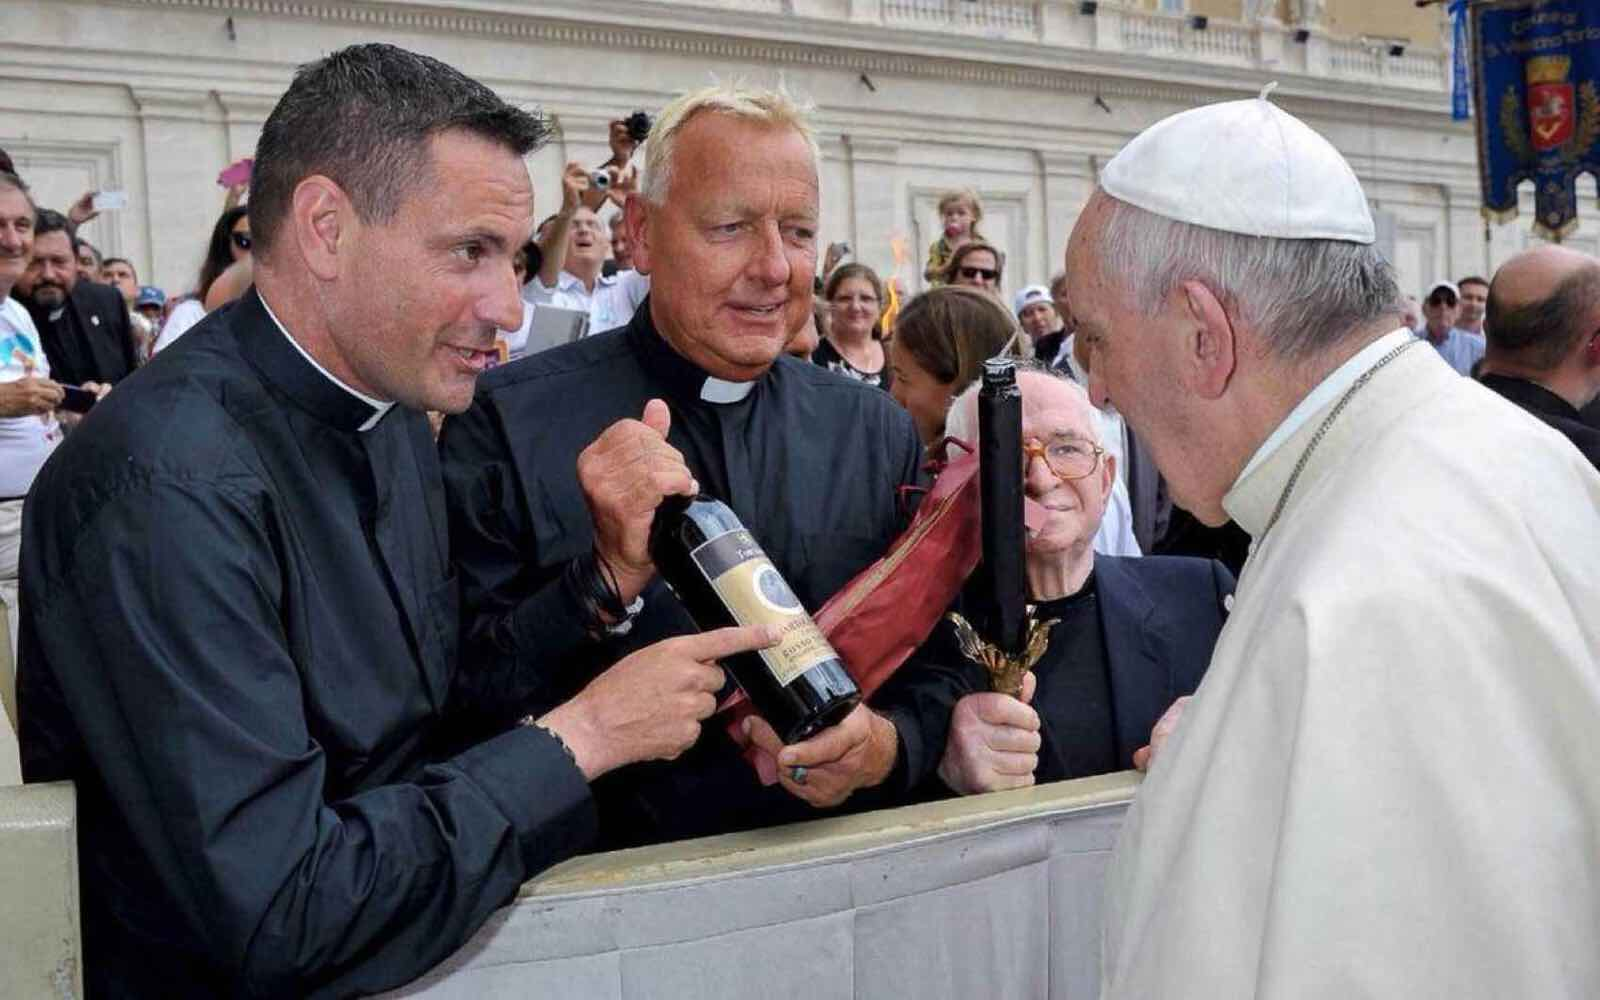 They all know Pope Francis love Italian wine